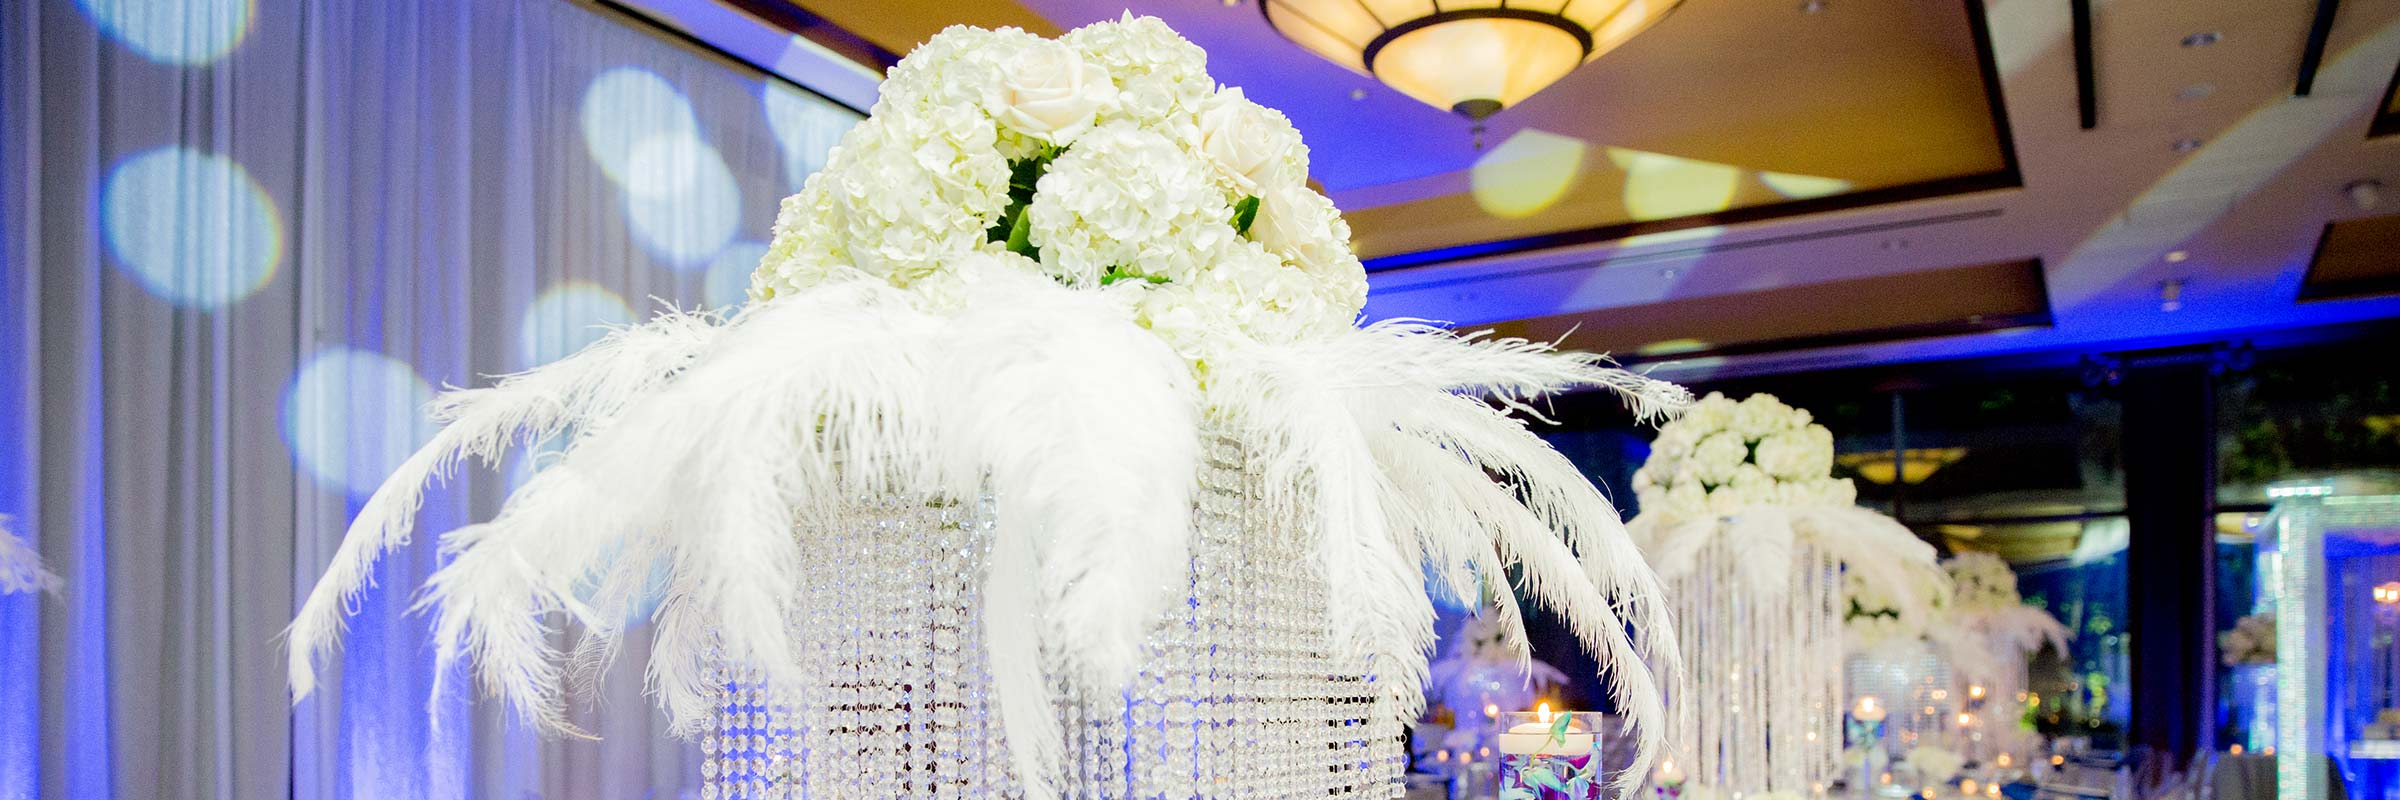 White Floral Arraingement Centerpiece Feathers Crystals